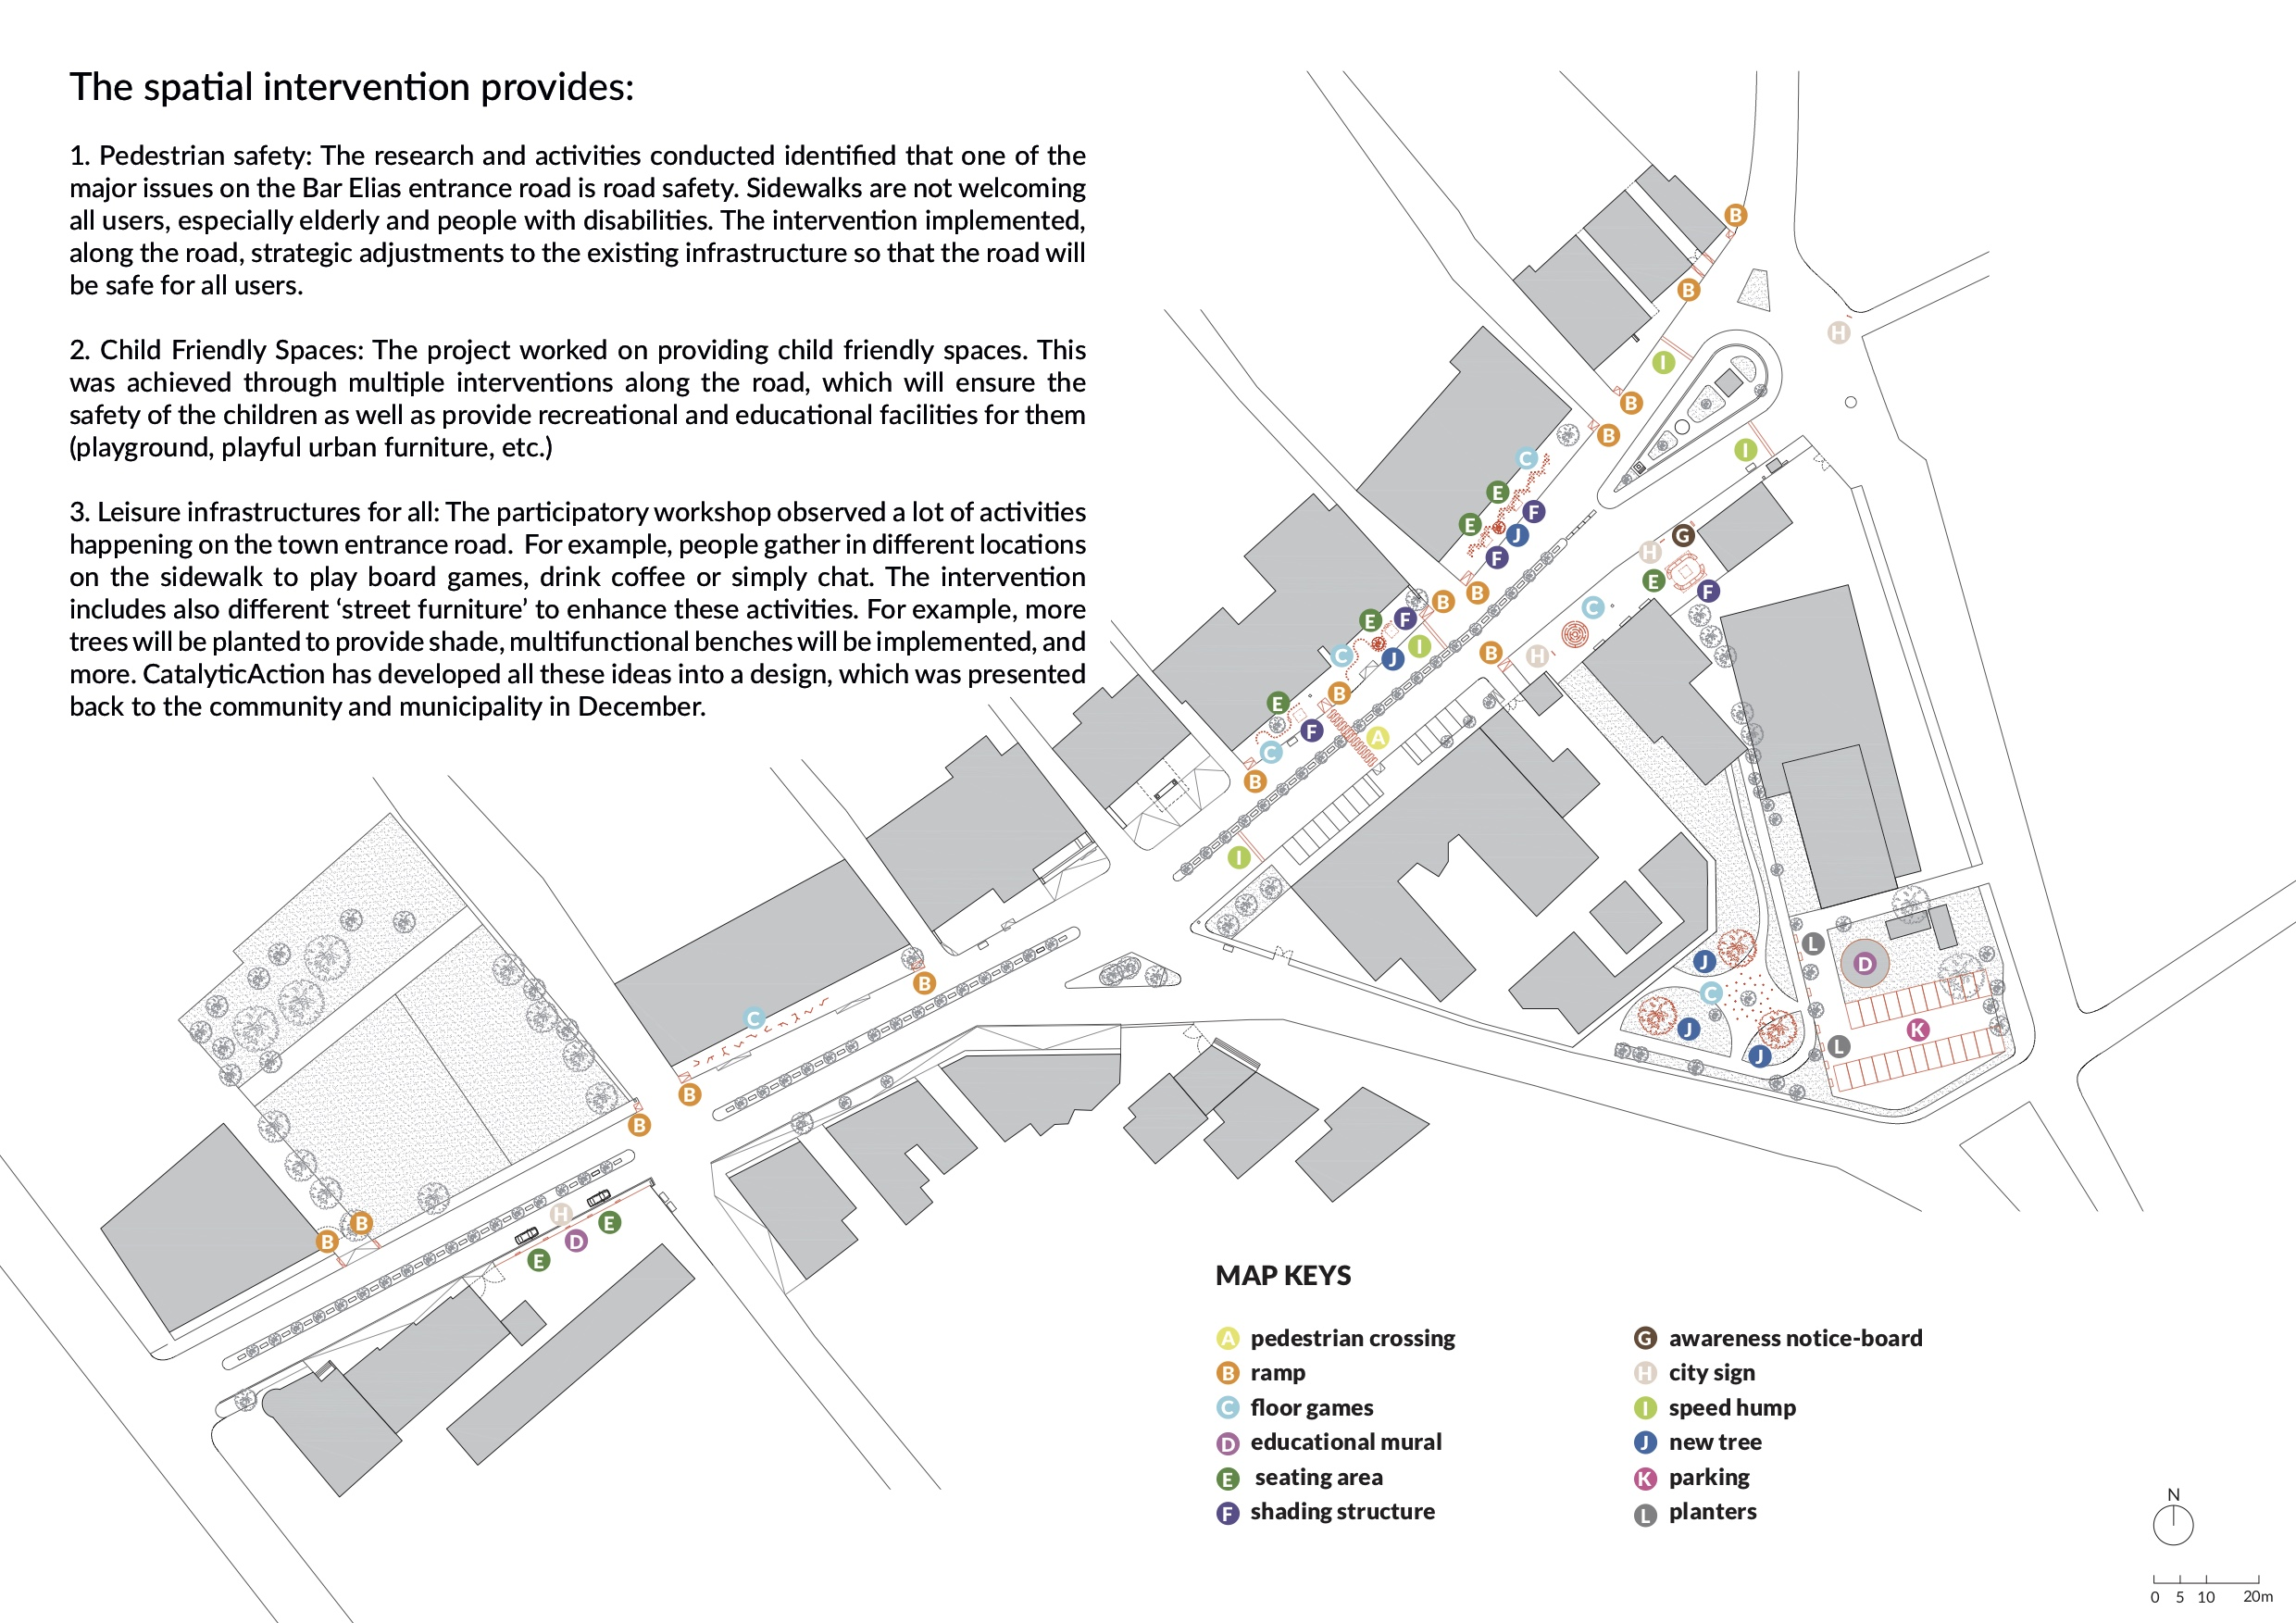 (c) CatalyticAction - Overview Map